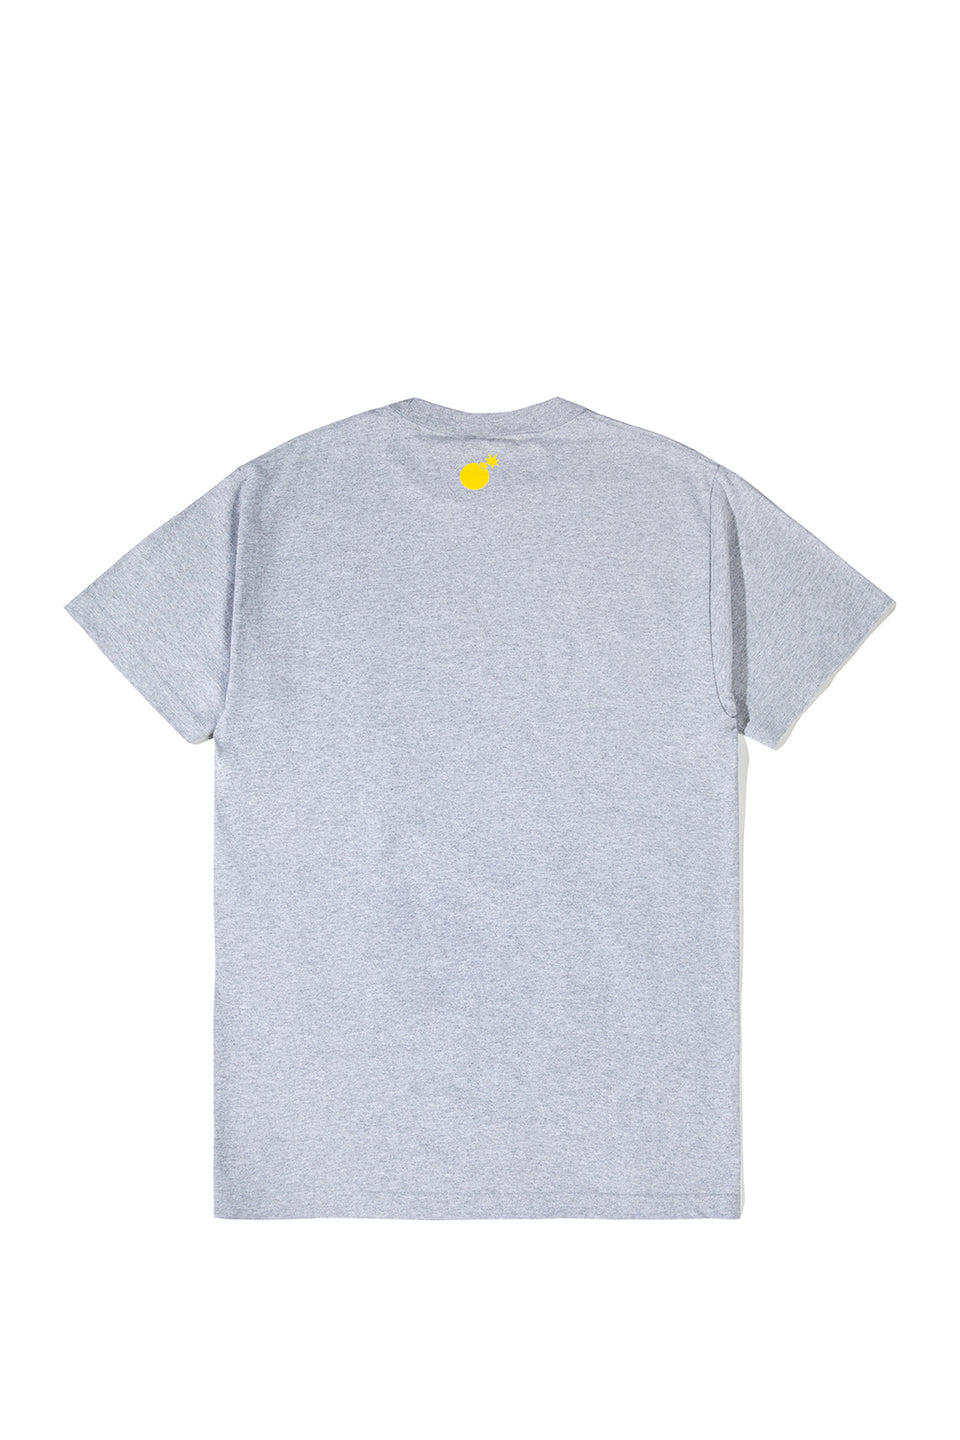 Craft T-Shirt